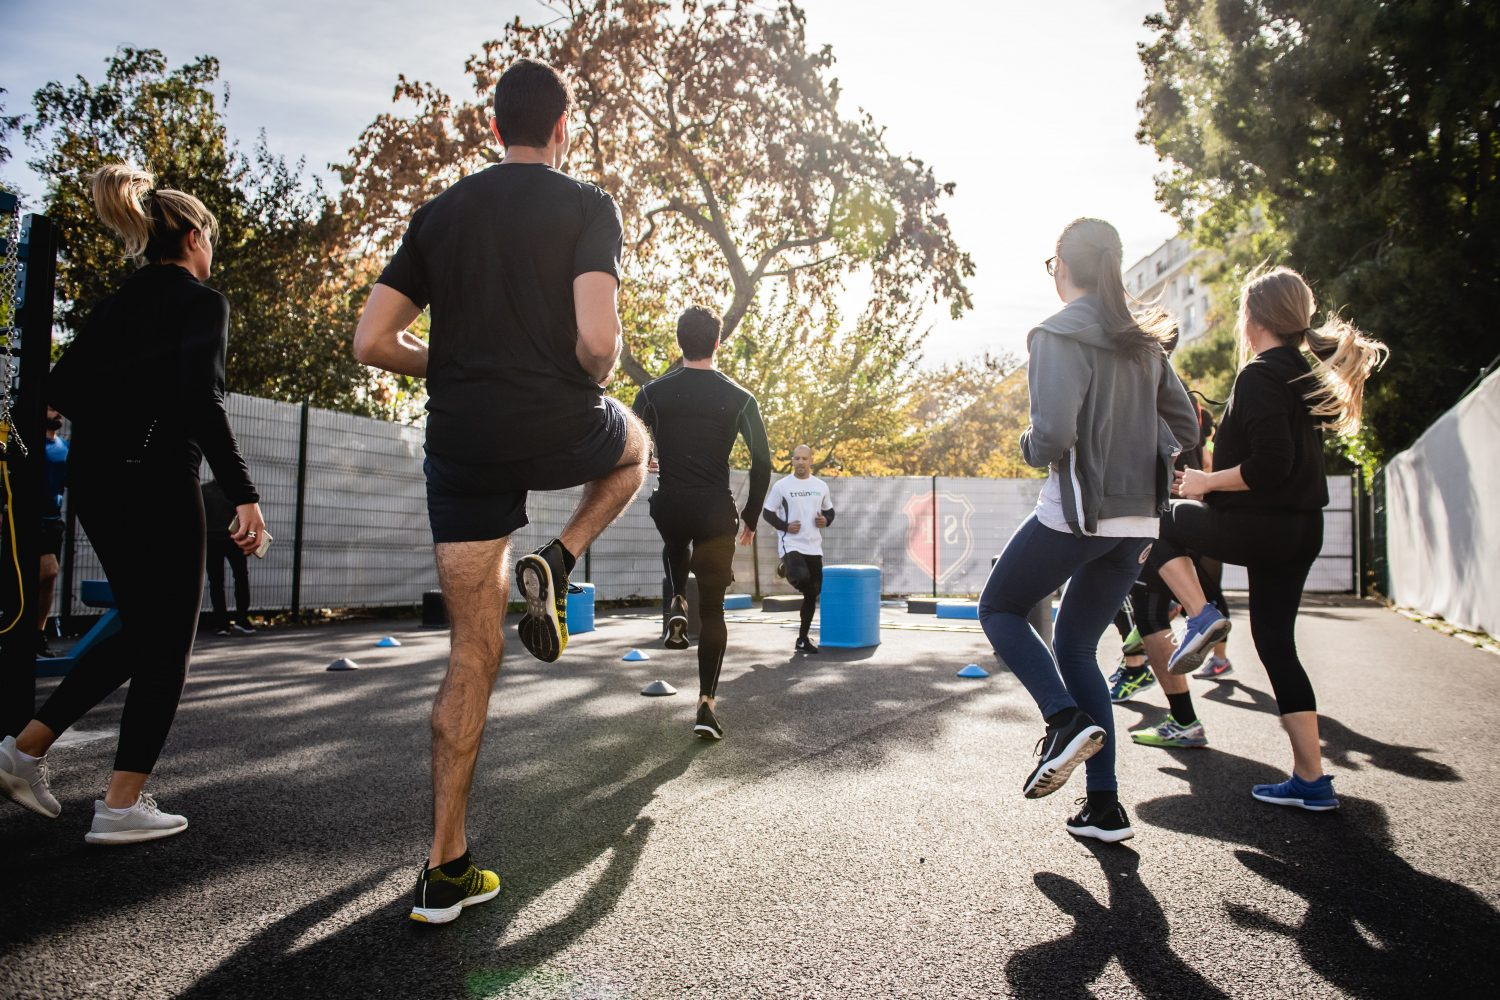 4 Tips For Being More Active Every Day